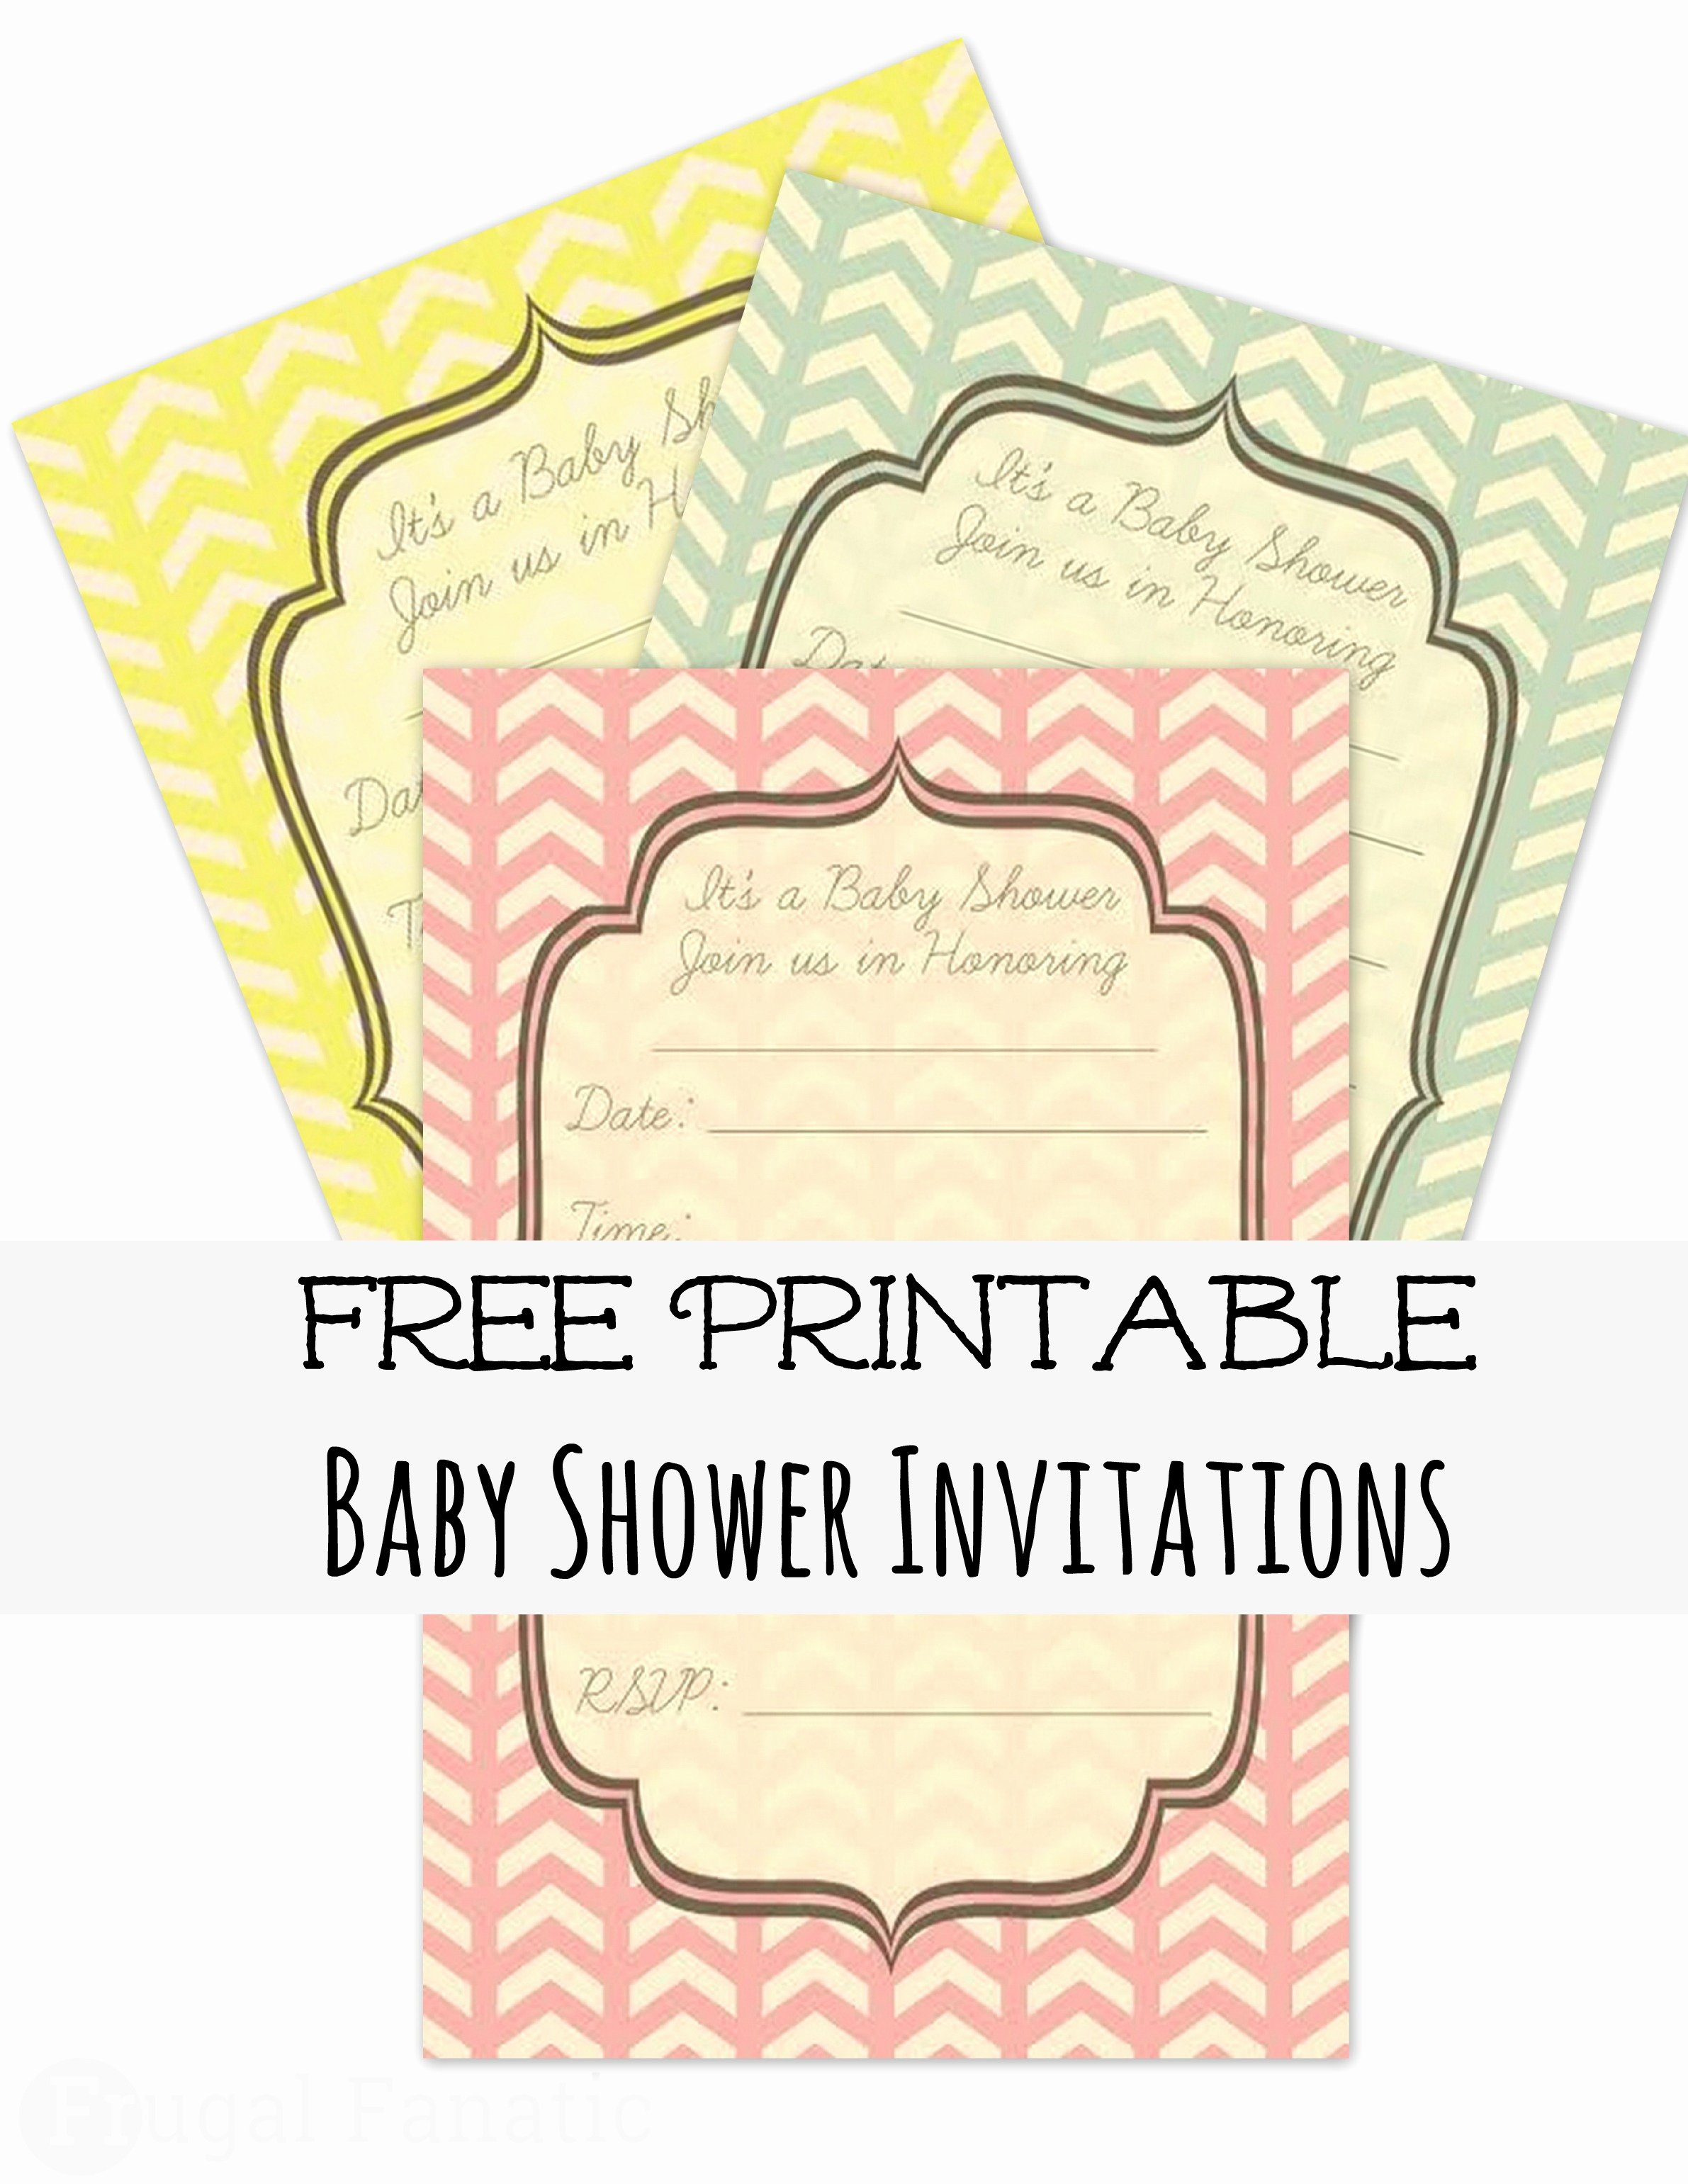 Free Baby Shower Invitation Templates Awesome Free Baby Shower Invites Frugal Fanatic